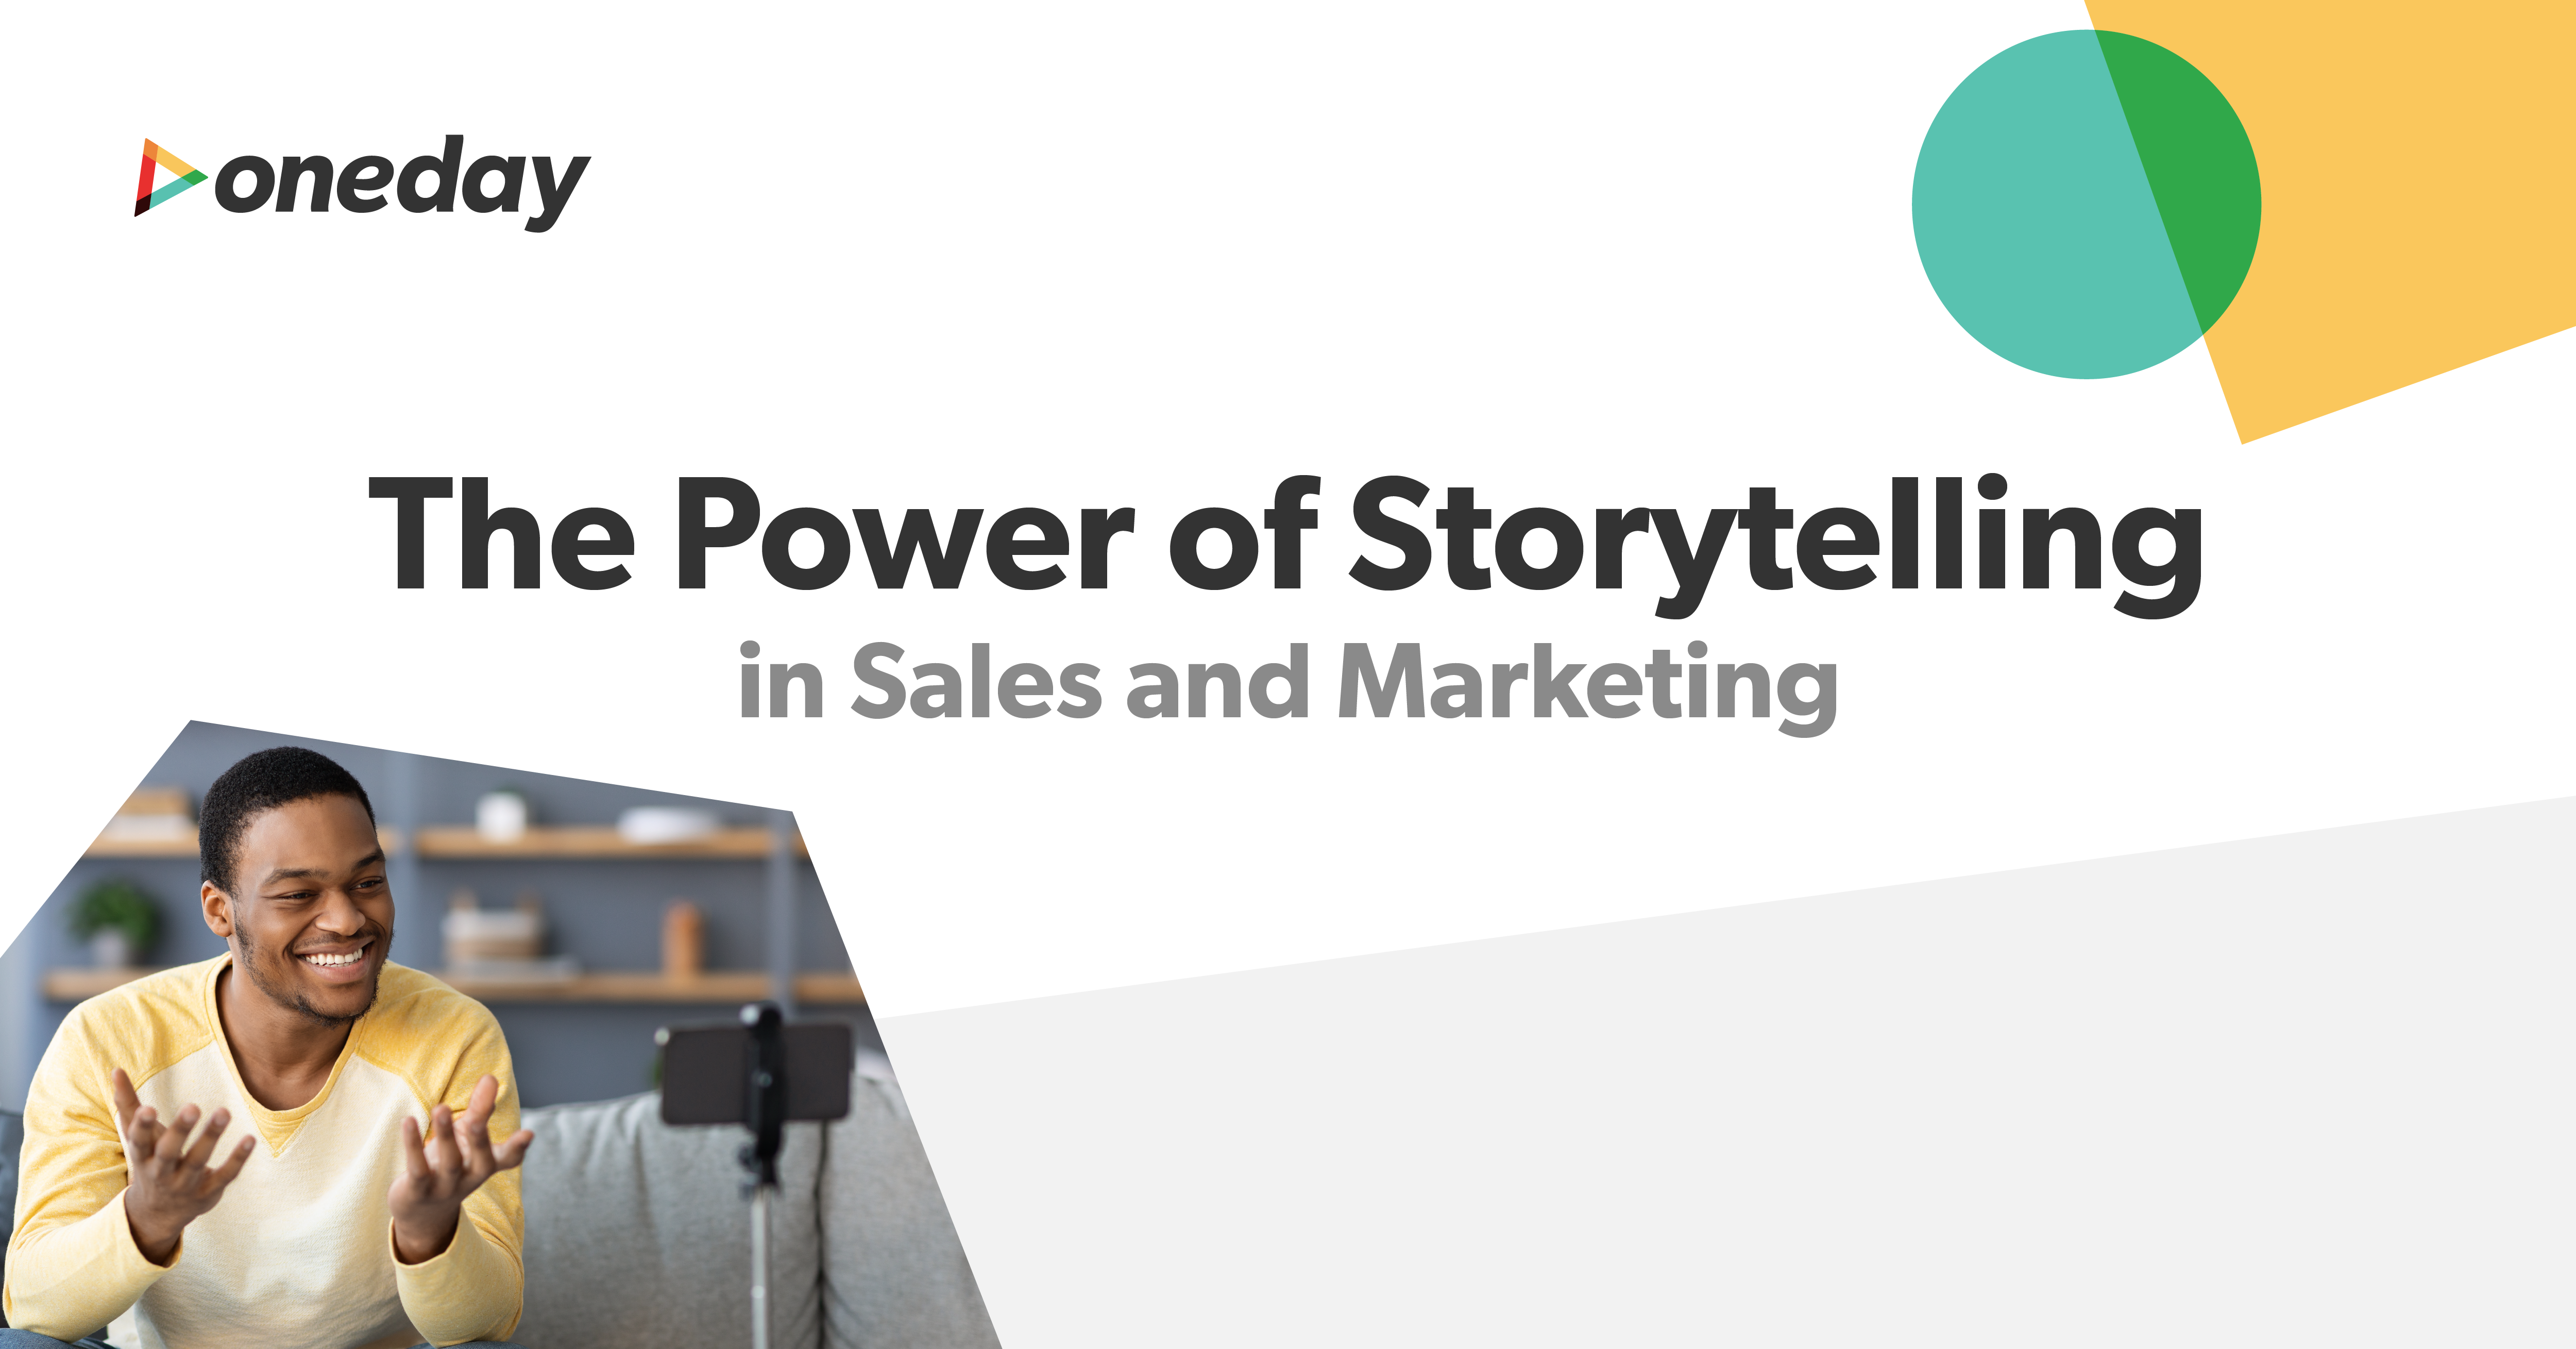 A look at what makes storytelling such a potent tool for sales and marketing teams trying to differentiate their organizations and drive conversions.